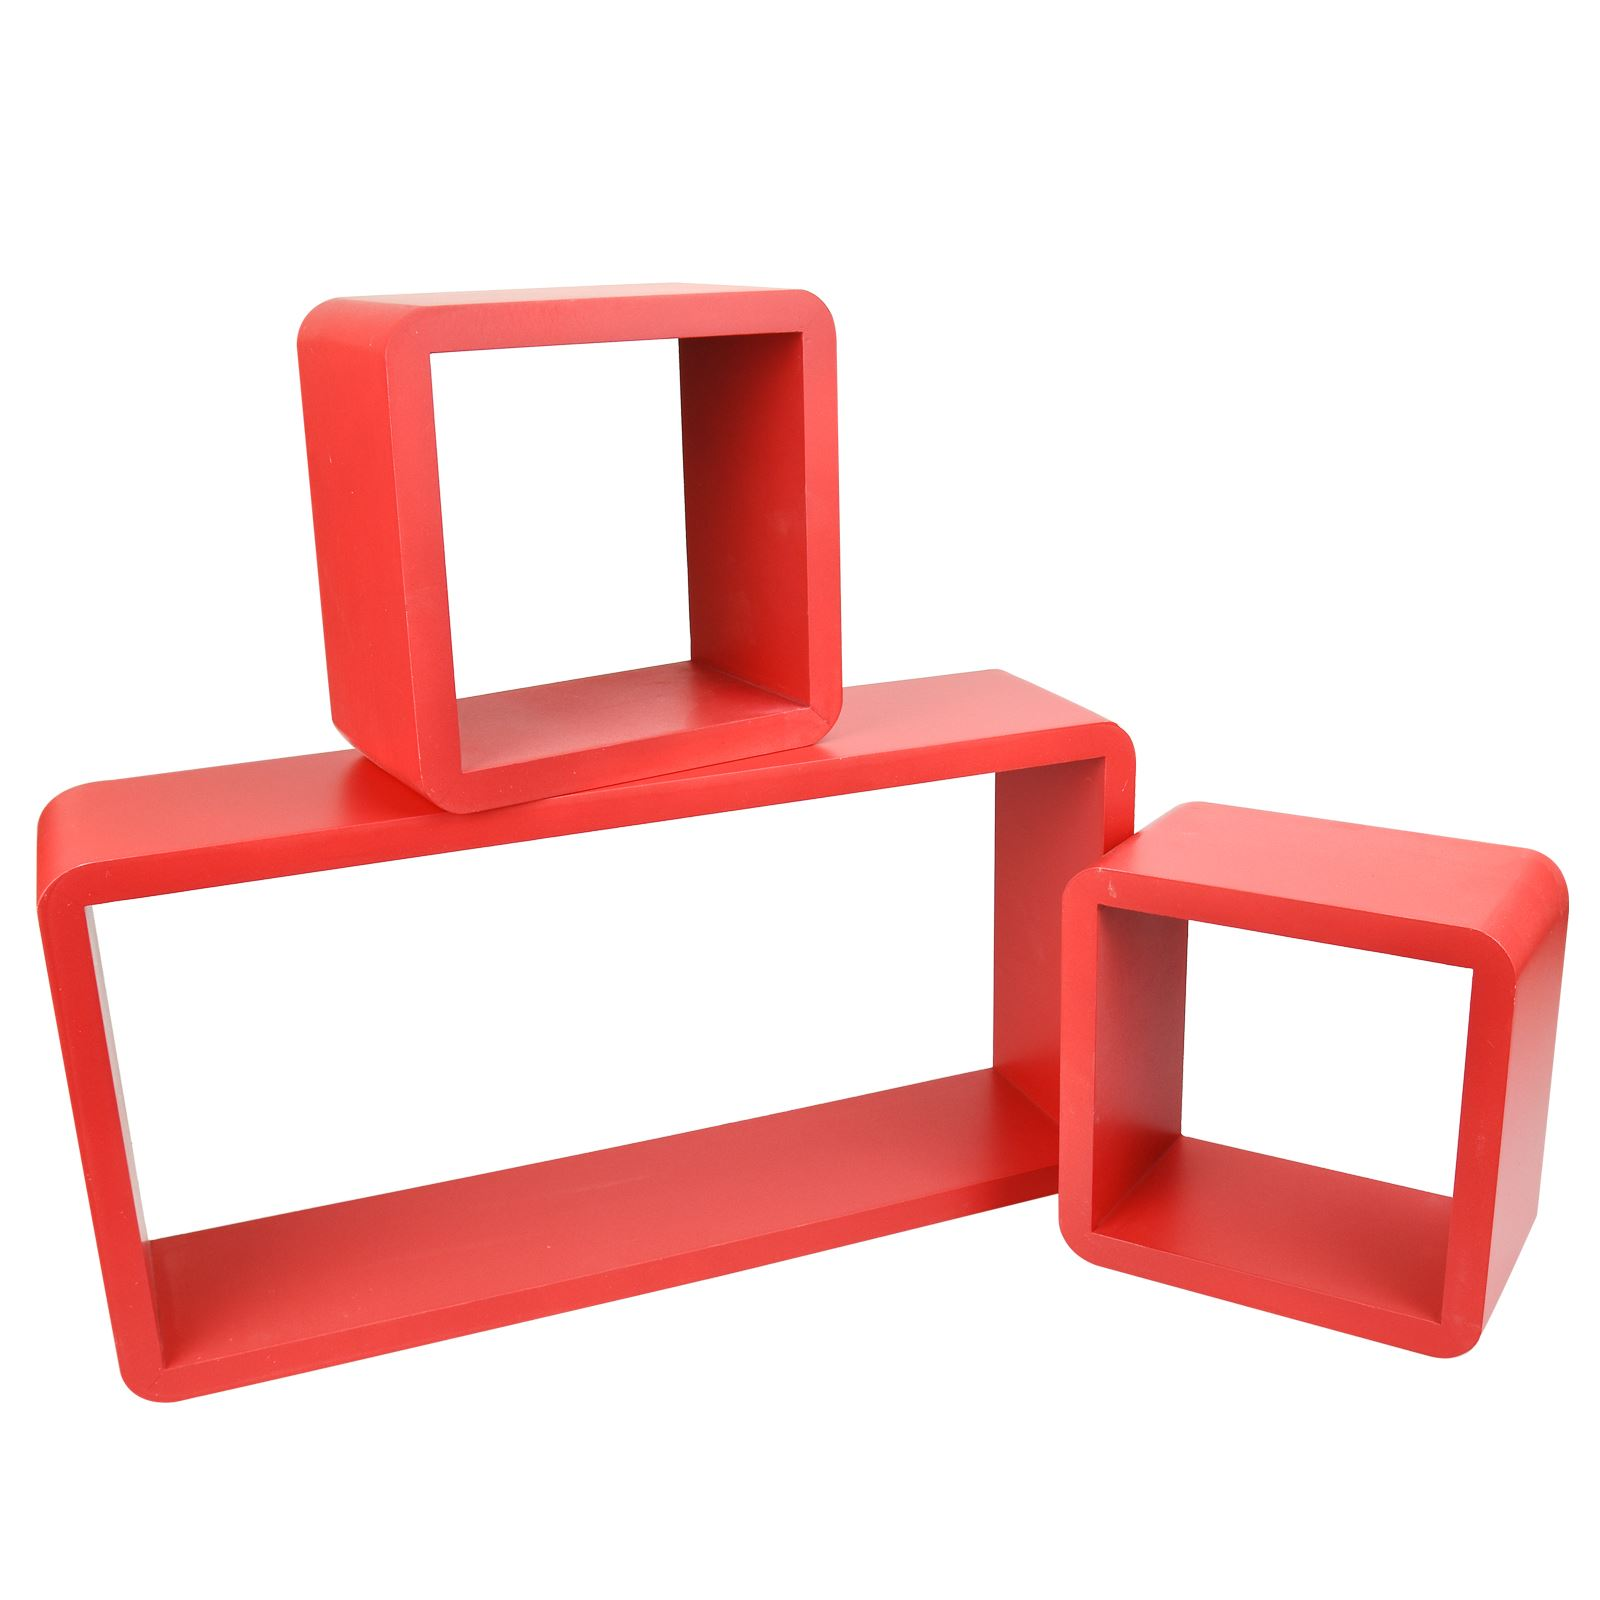 3pc-Set-Rectangle-Floating-Shelves-Wall-Mount-Storage-Book-Shelf-DVD-CD-Stand thumbnail 19